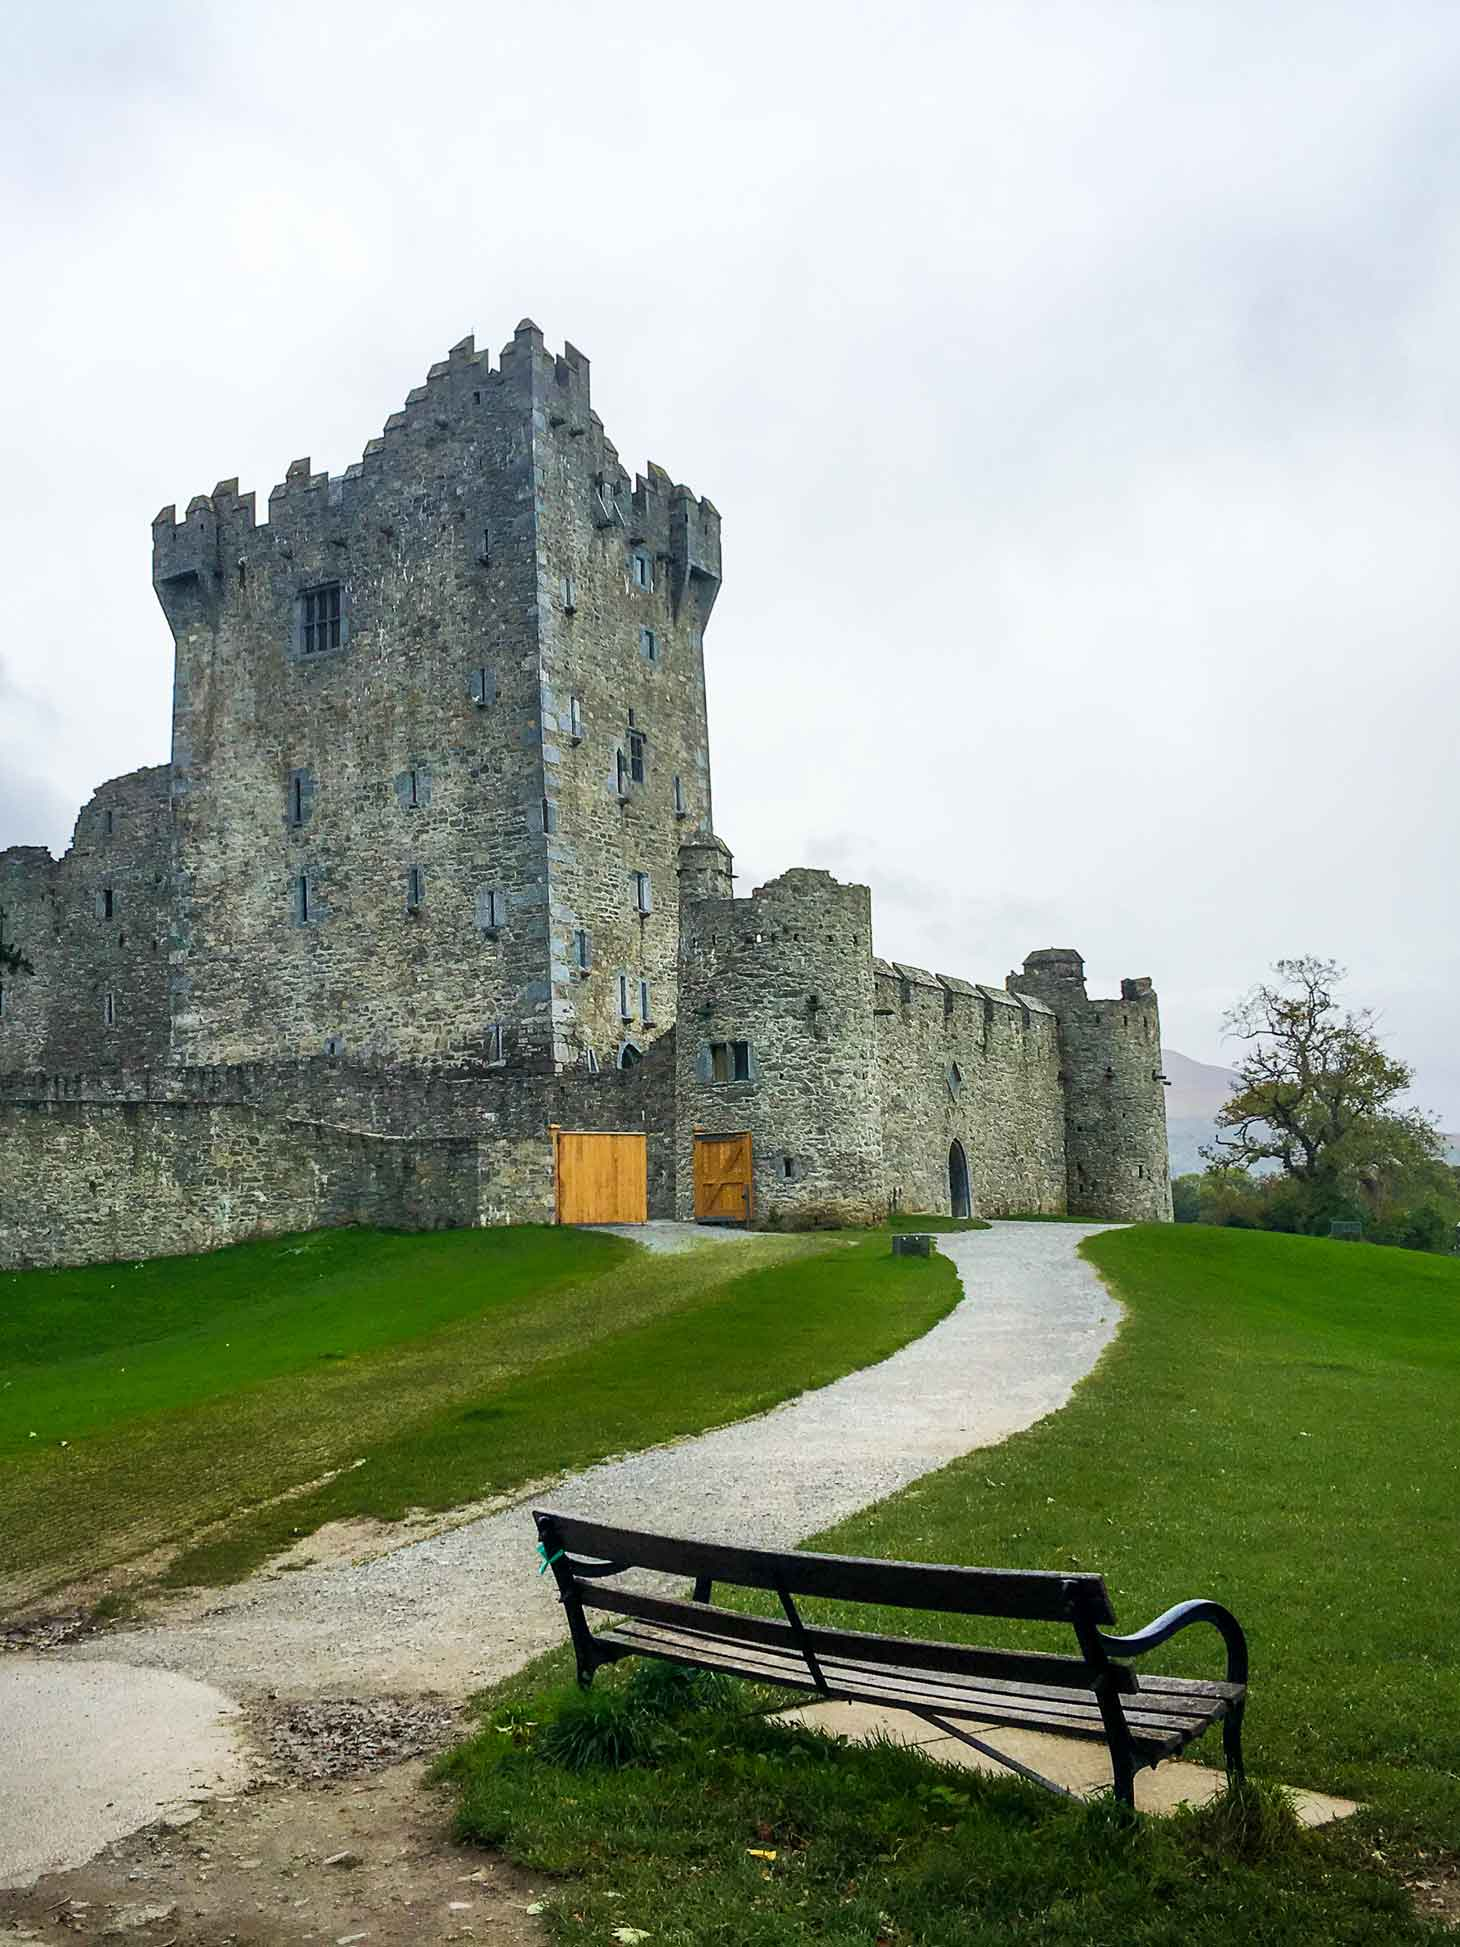 Ross Castle on the shores of the Lakes of Killarney